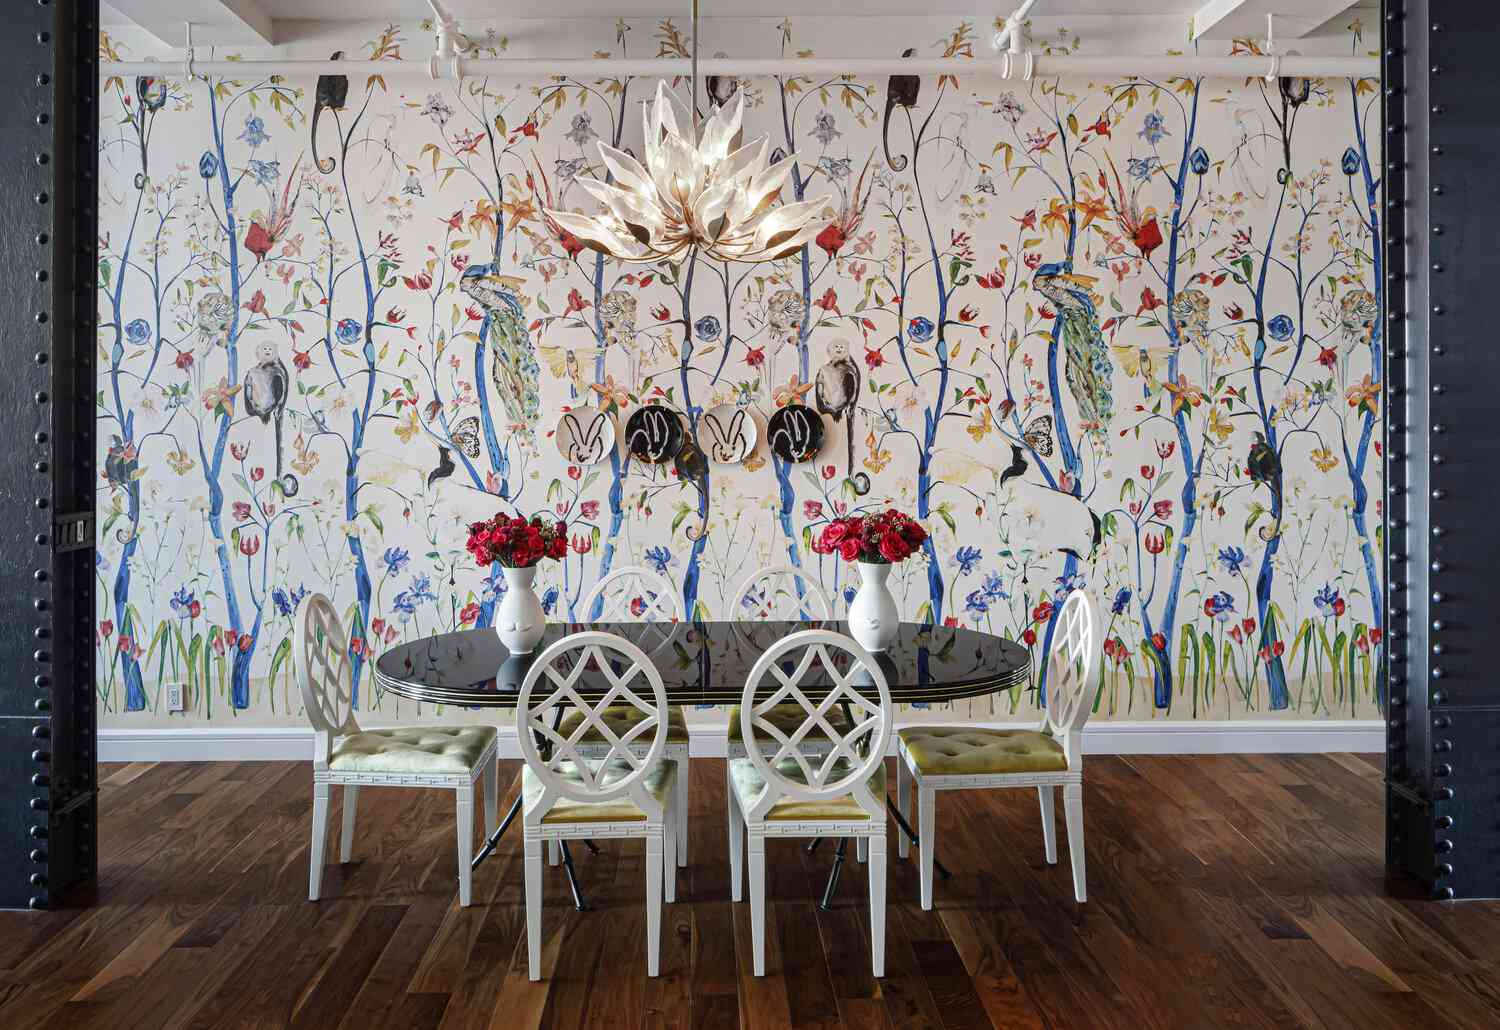 nature wall mural, bunny plates, dining space